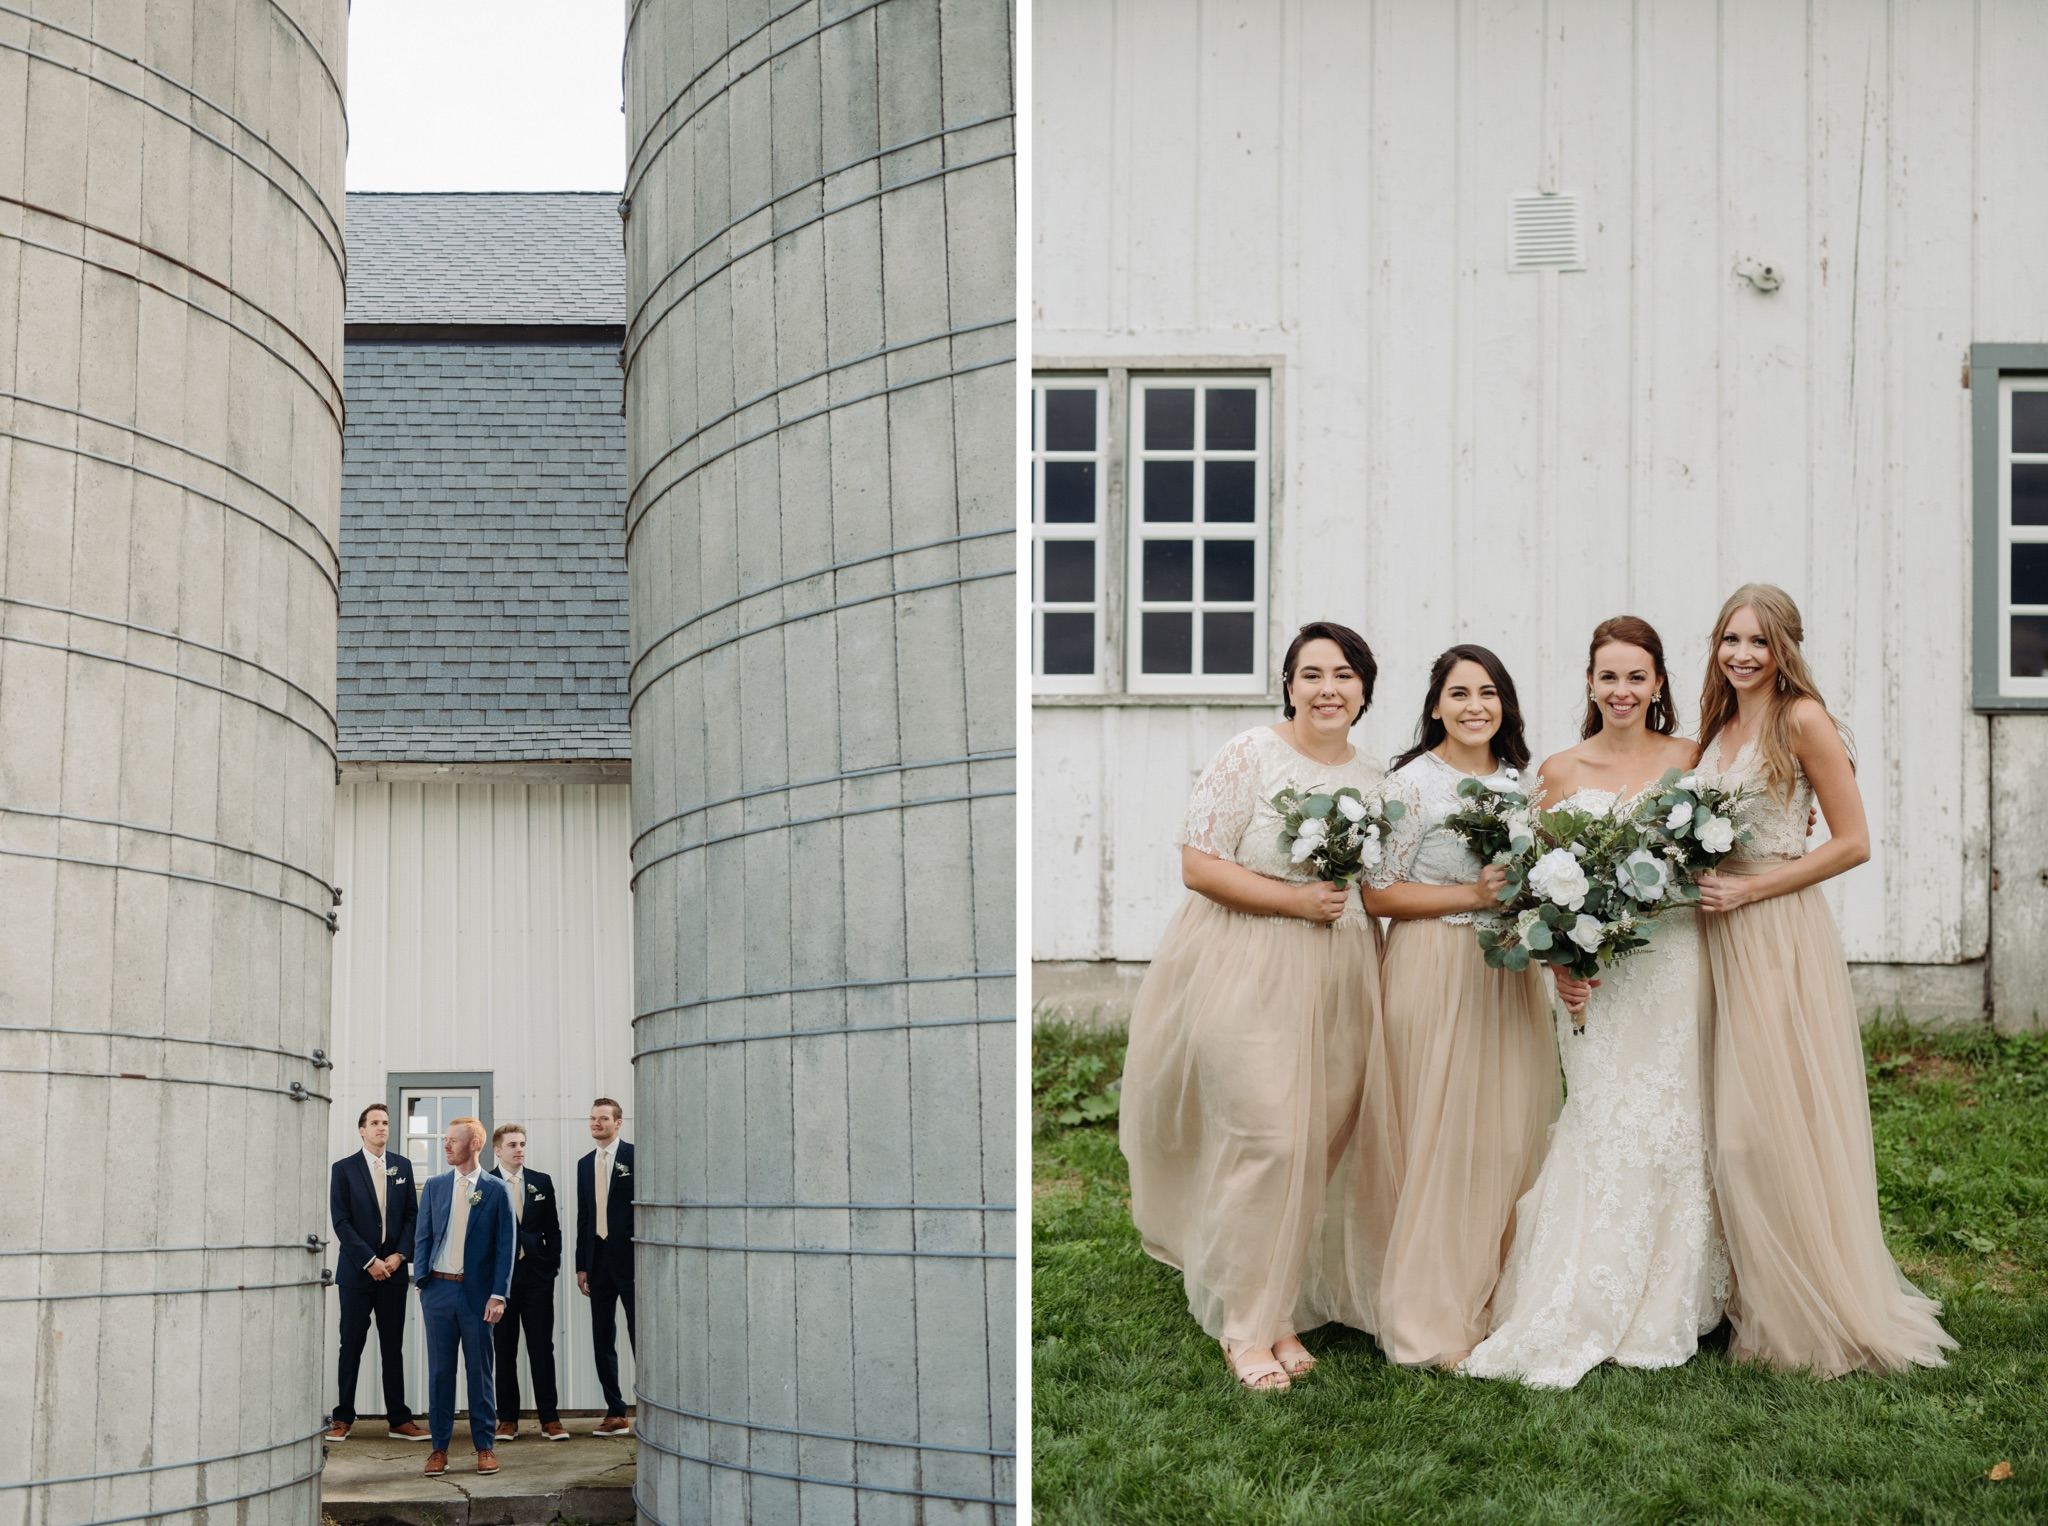 groom with grooms men and bride with bridesmaid